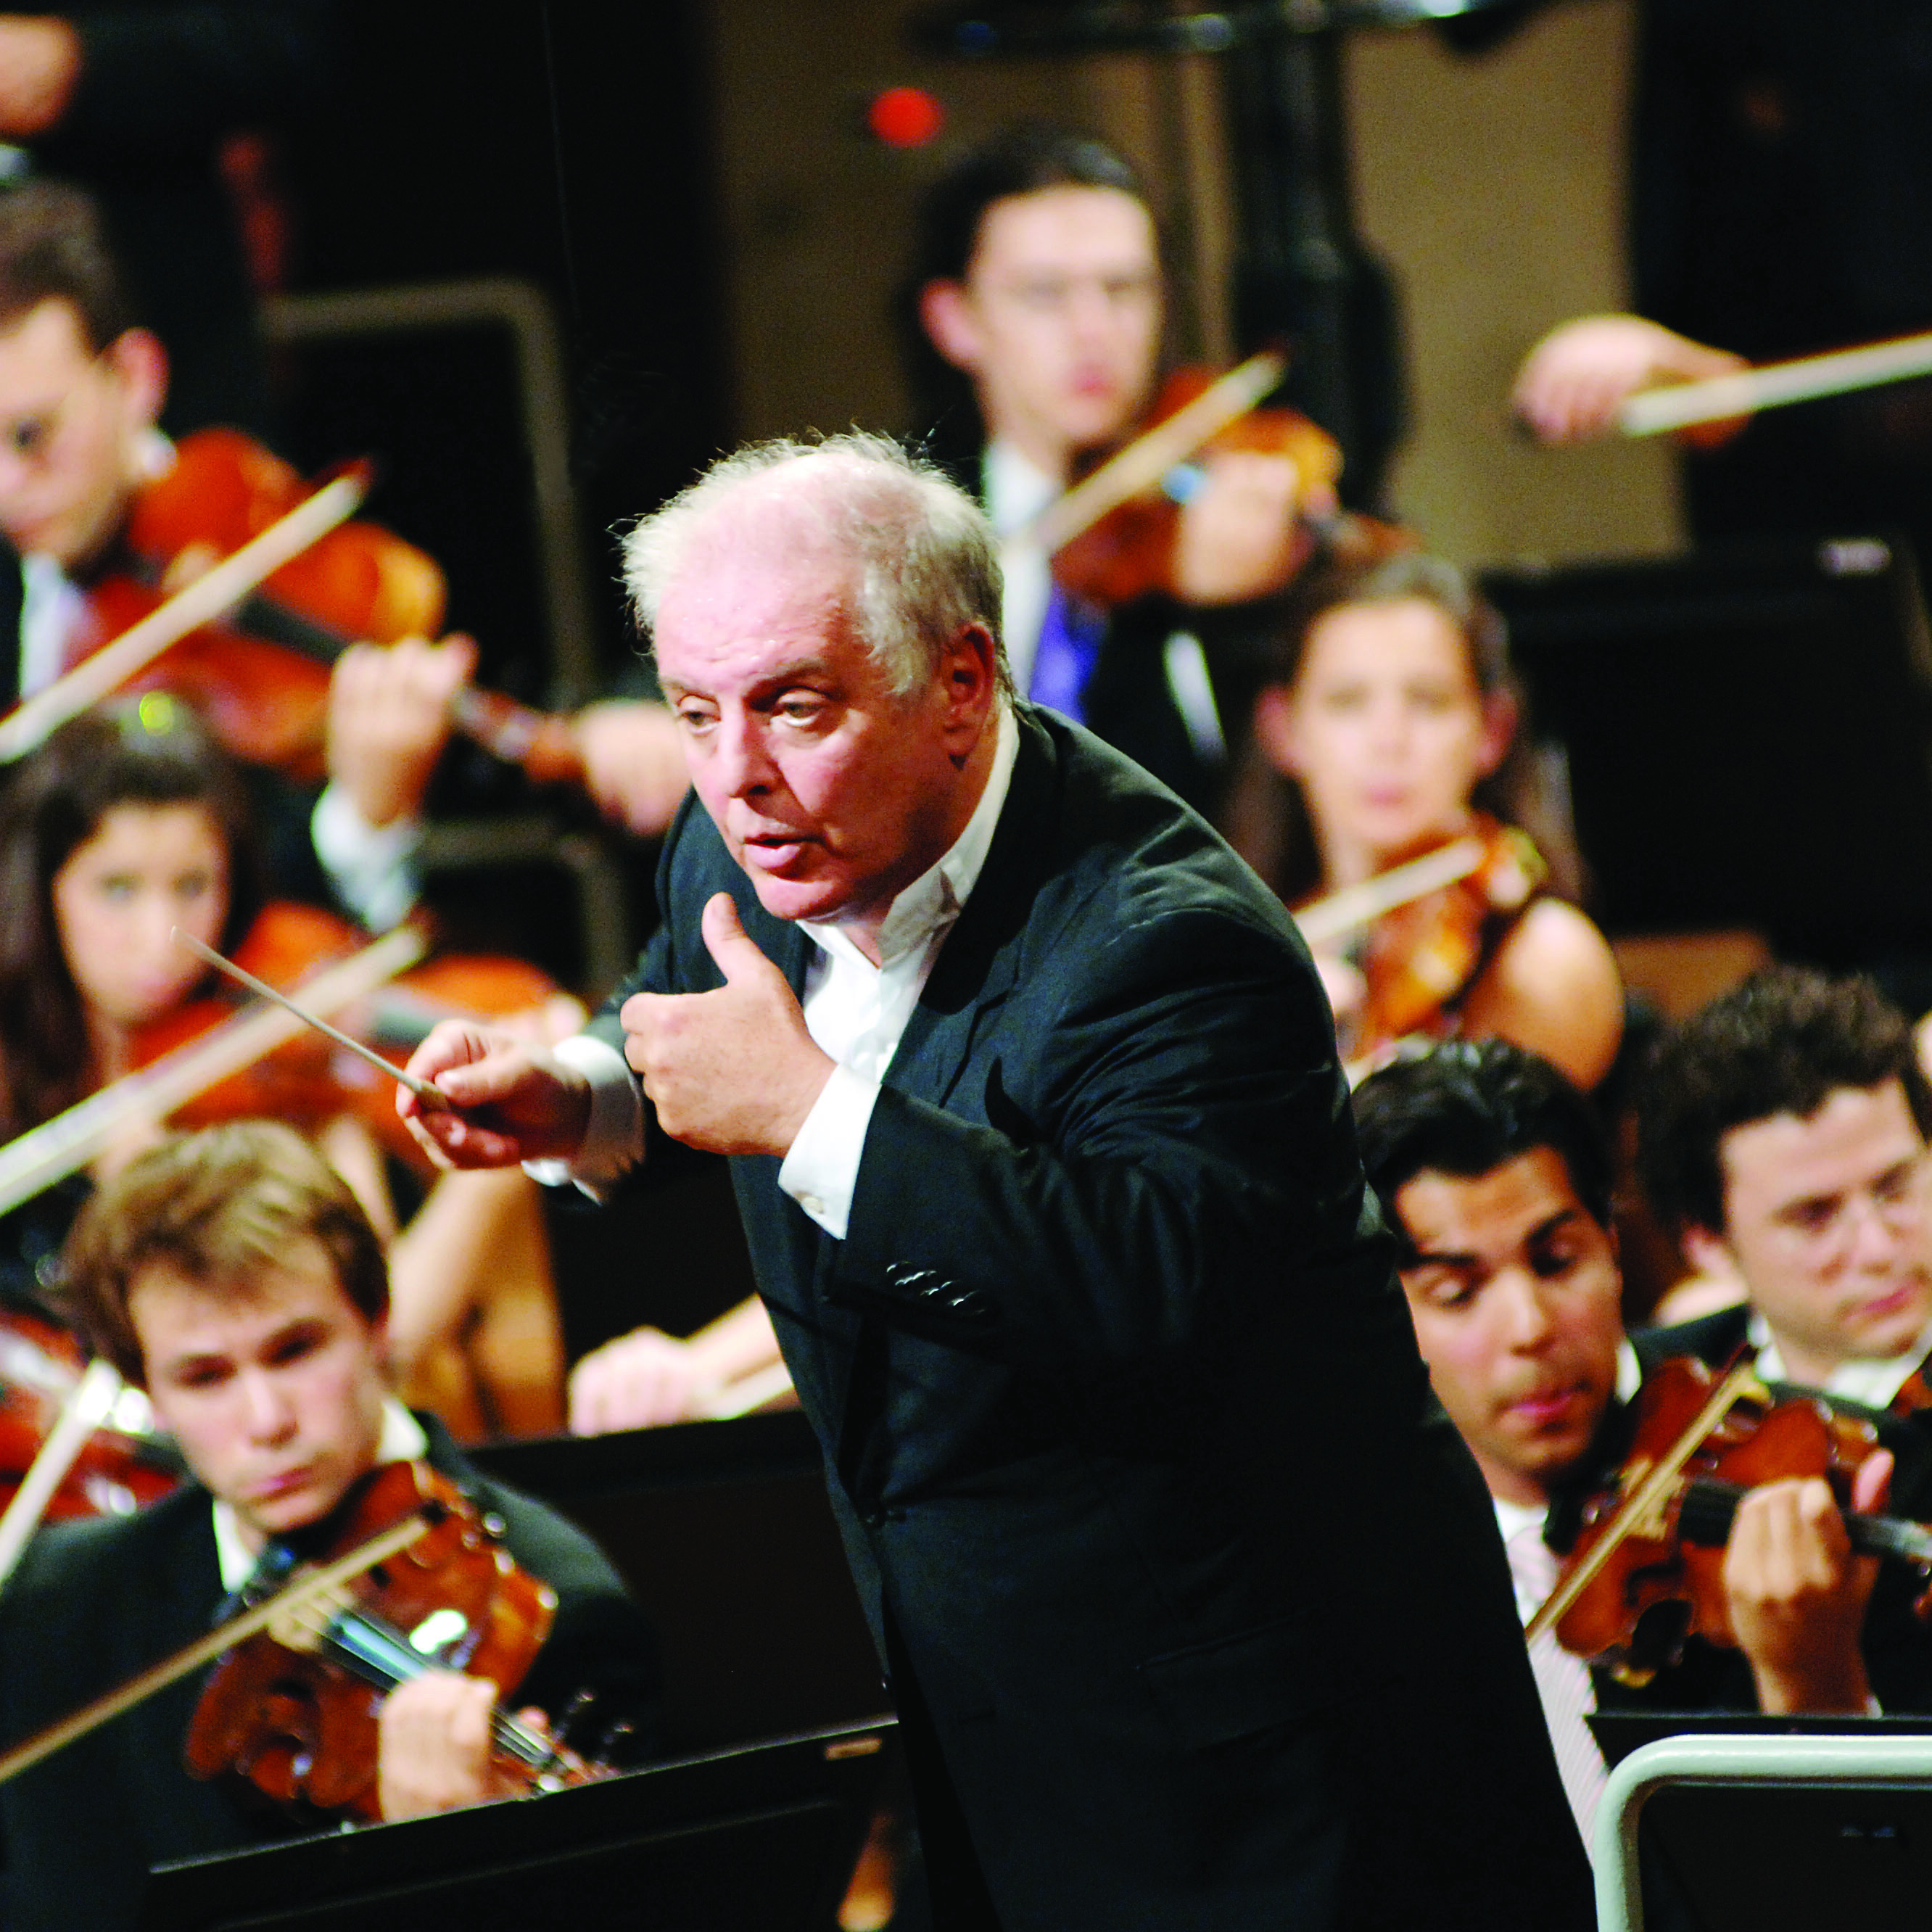 "<font style=""color:#1294d8;""><b>Daniel Barenboim and the West-Eastern Divan Orchestra</b></font>"